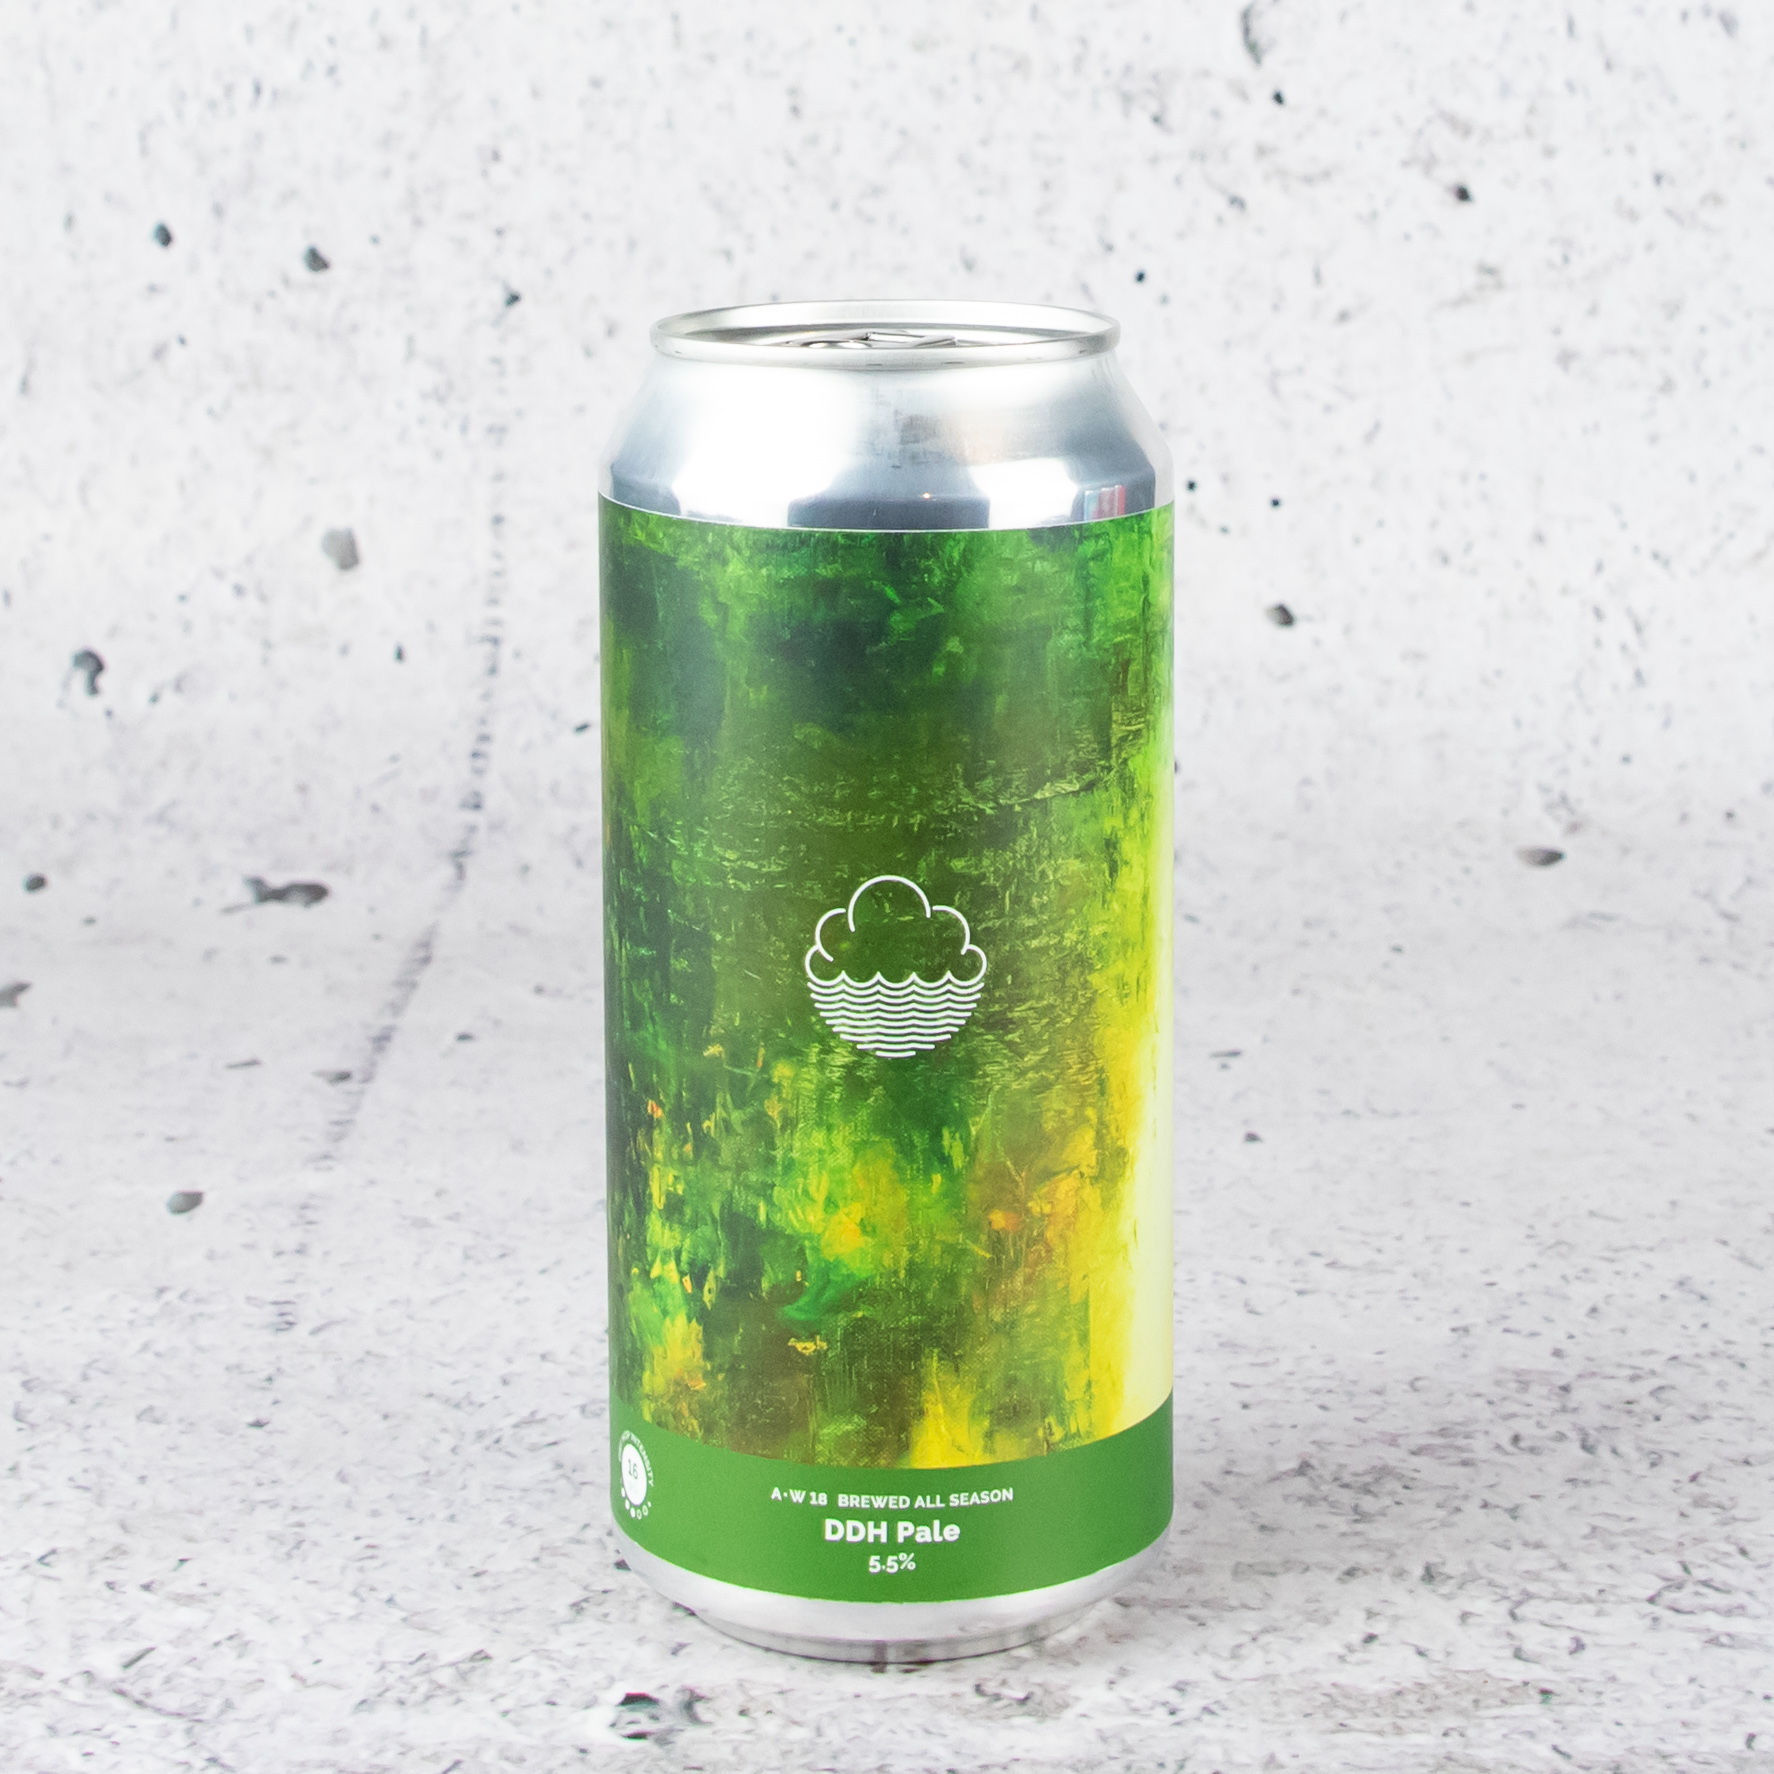 Cloudwater AW18 Brewed All Season DDH Pale